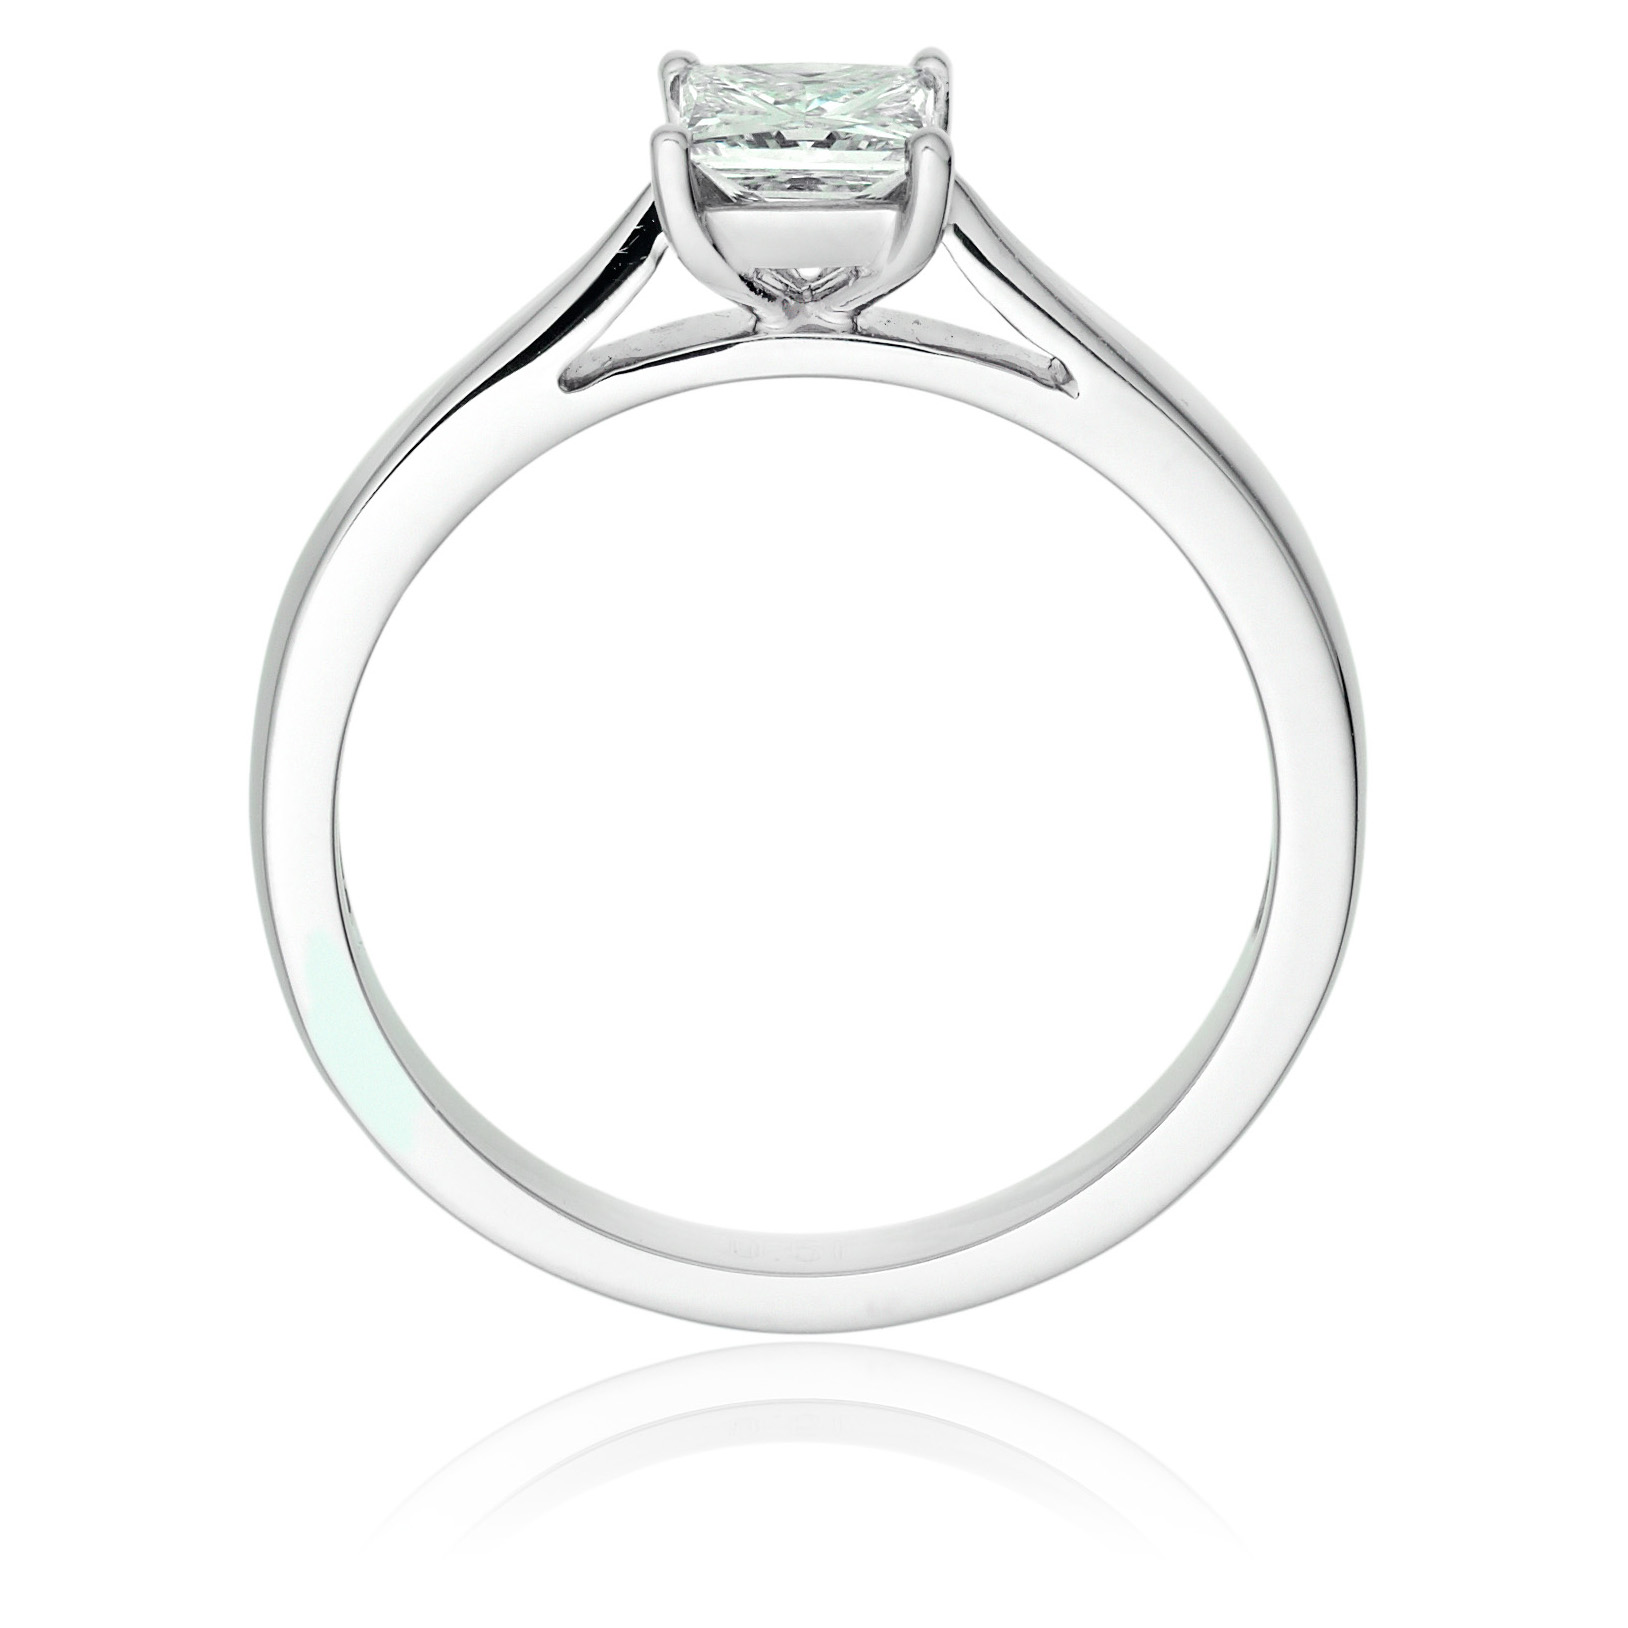 Princess-cut diamond - NA464